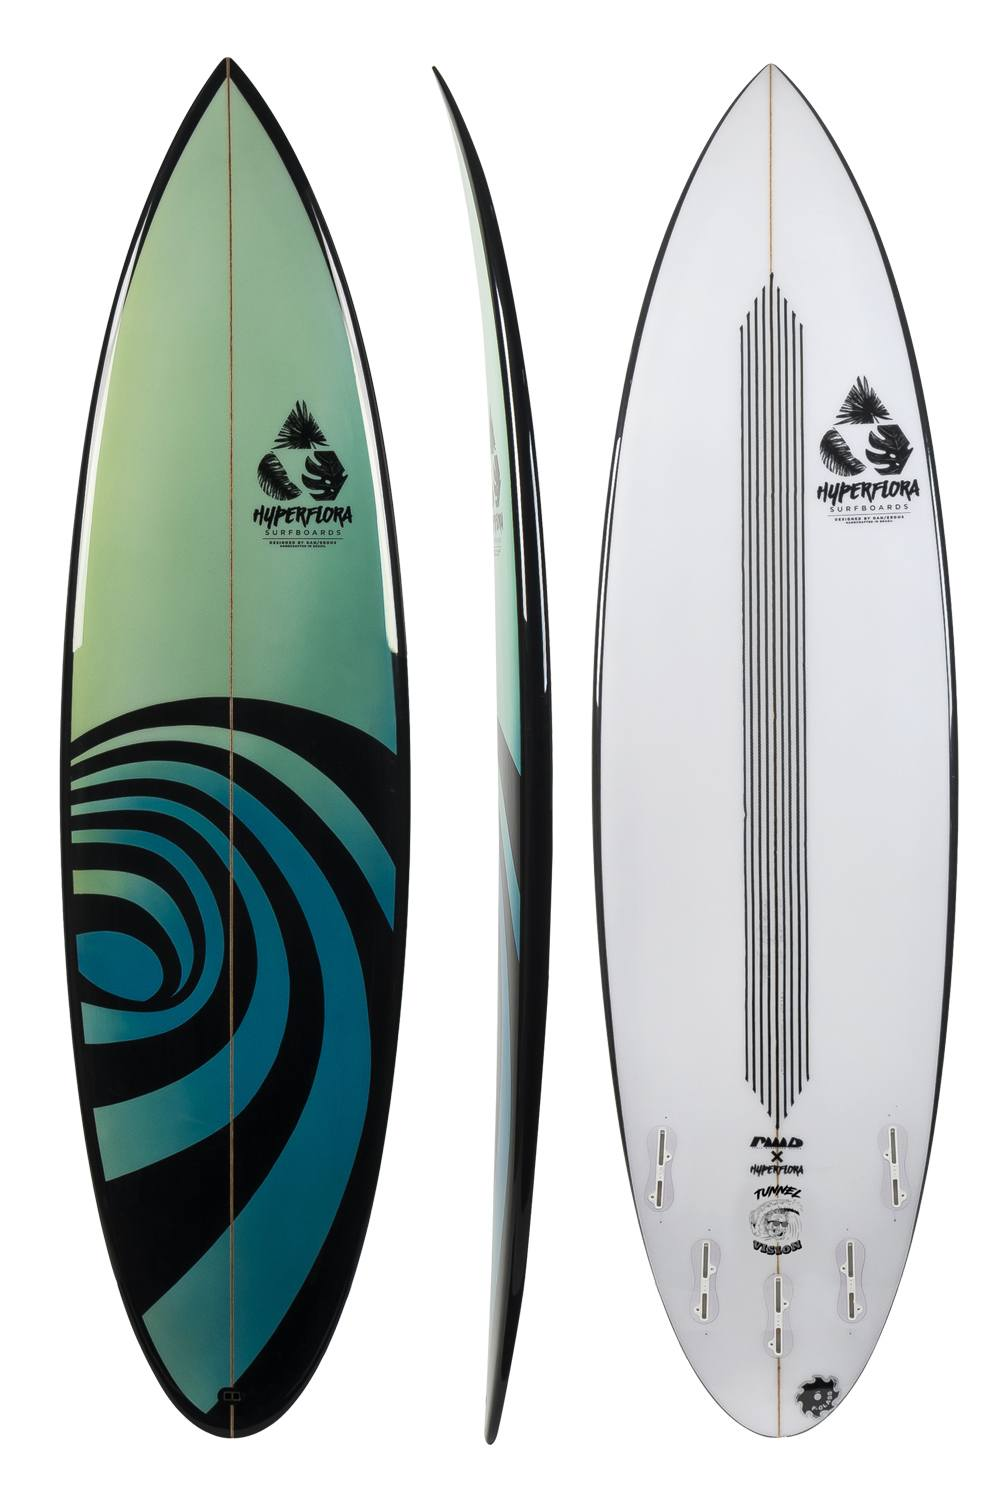 Tunnel Vision | Hyperflora Surfboards